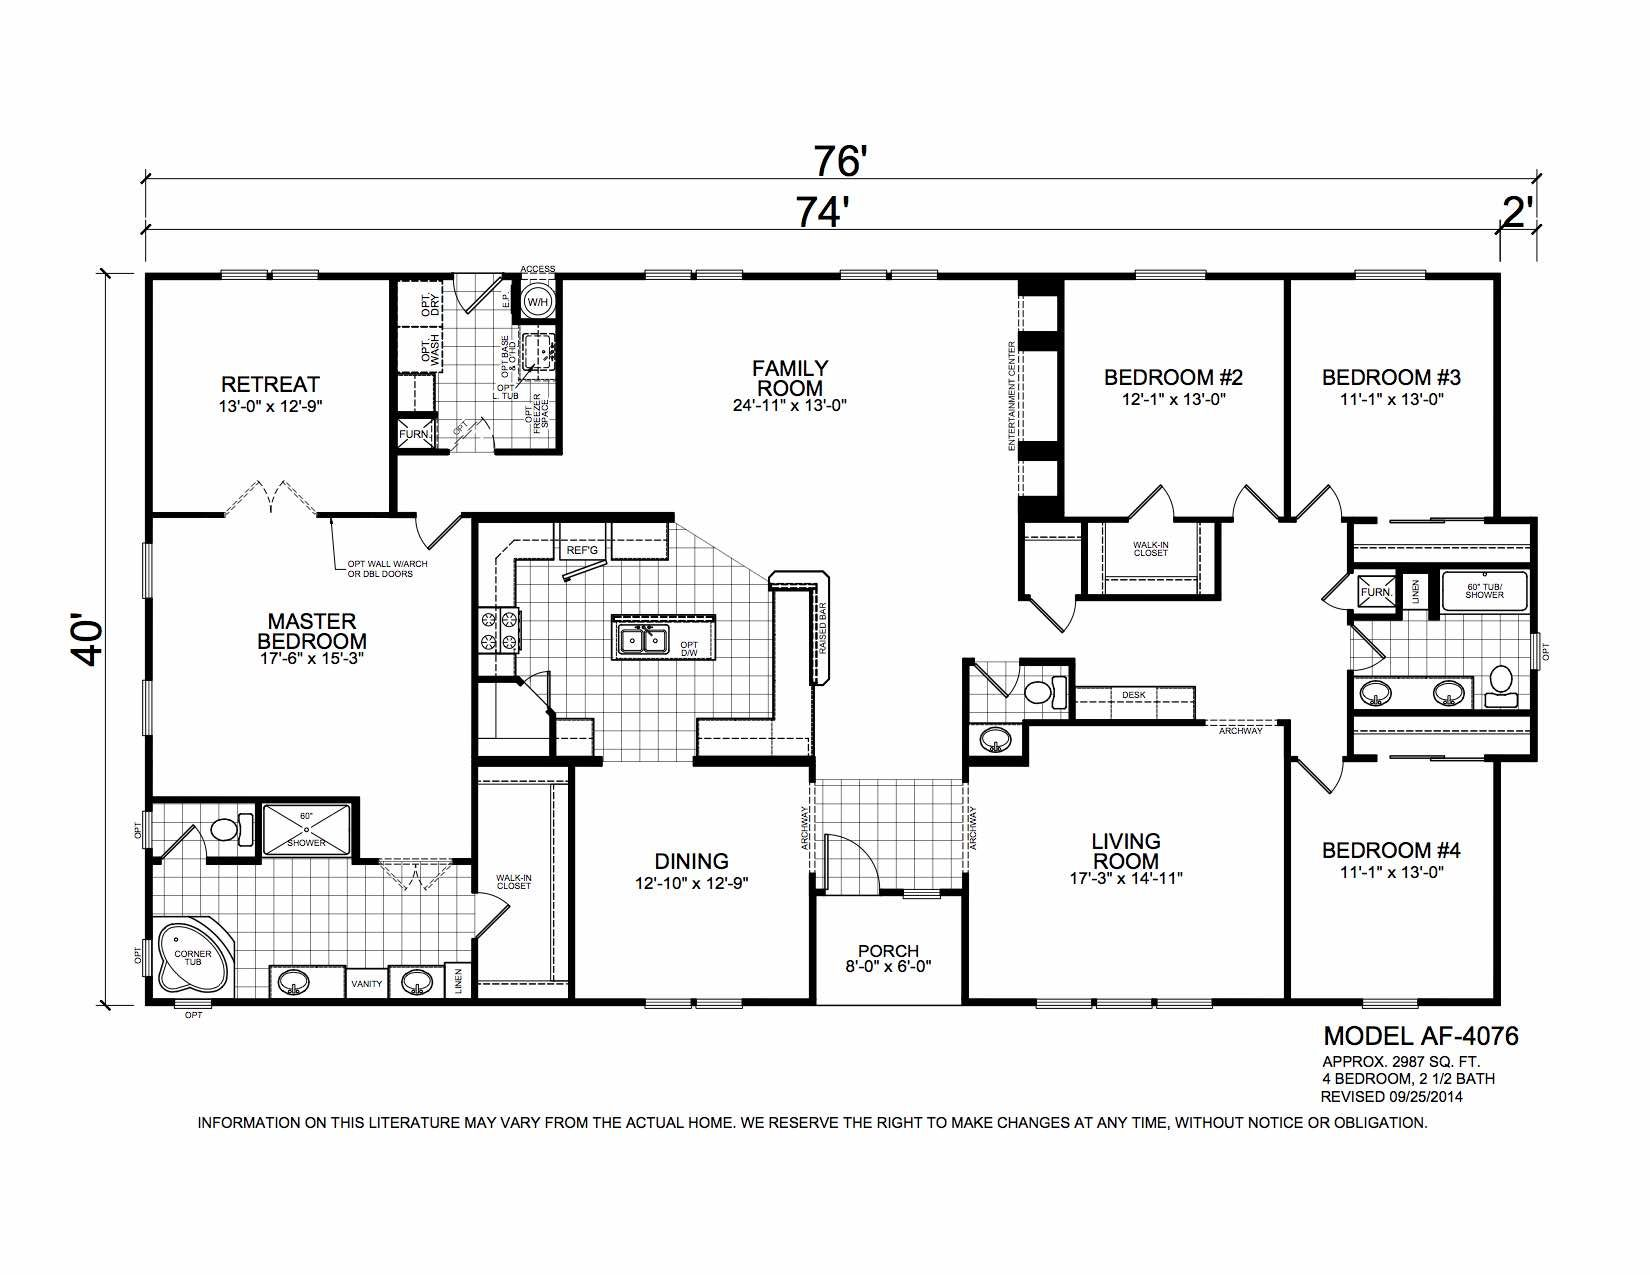 Homes Direct Modular Homes - Model AF4076 - Floorplan